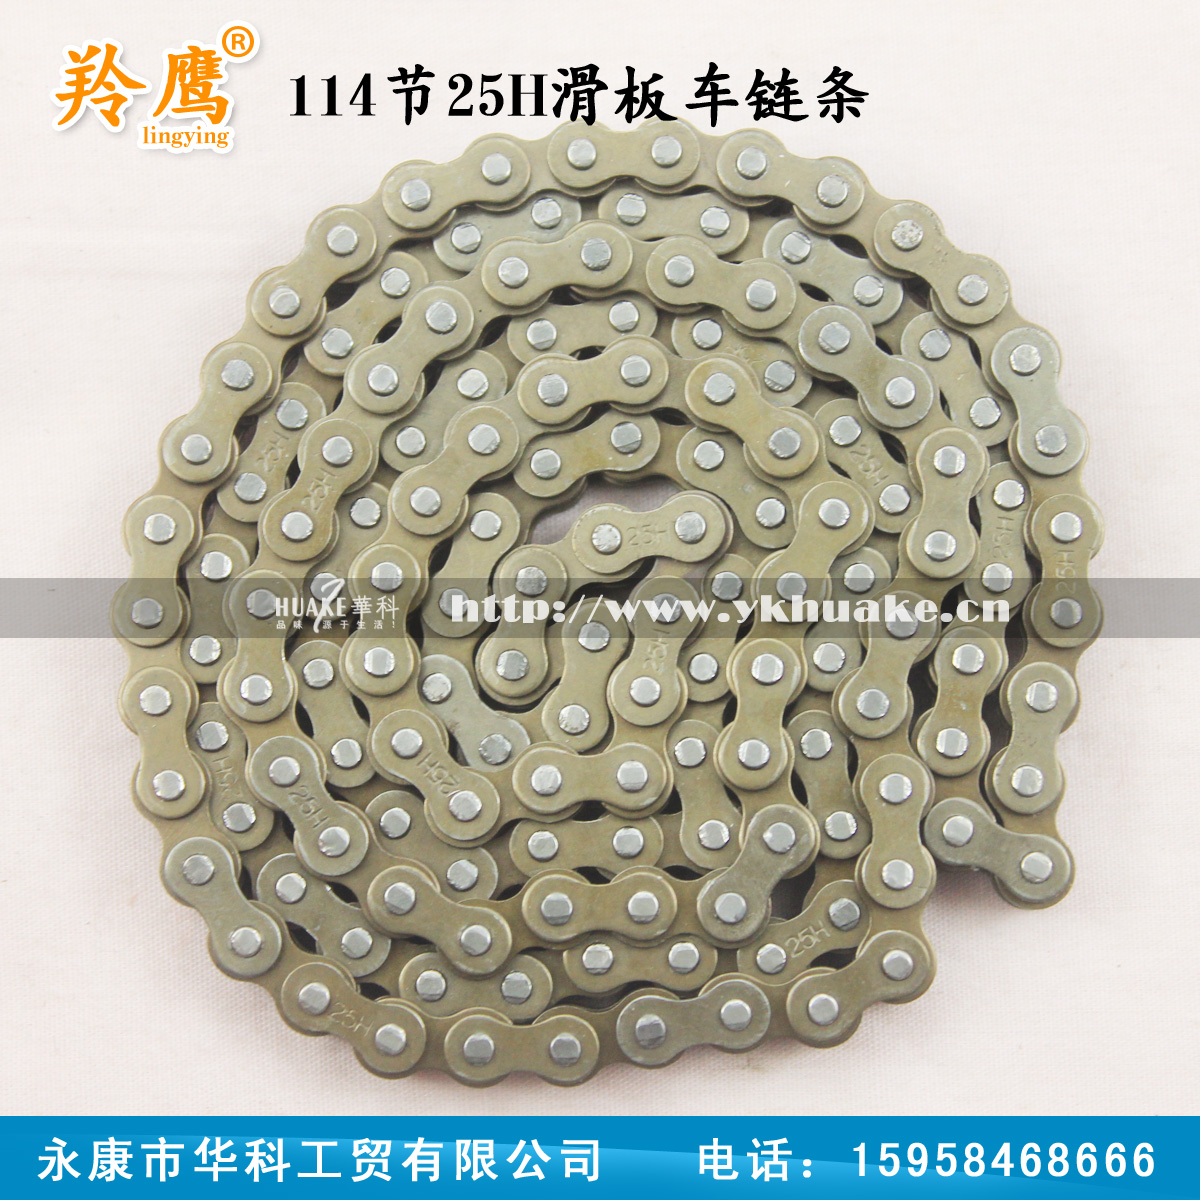 Mini electric scooter 300-pound electric bicycle chain 114 links 25h chain